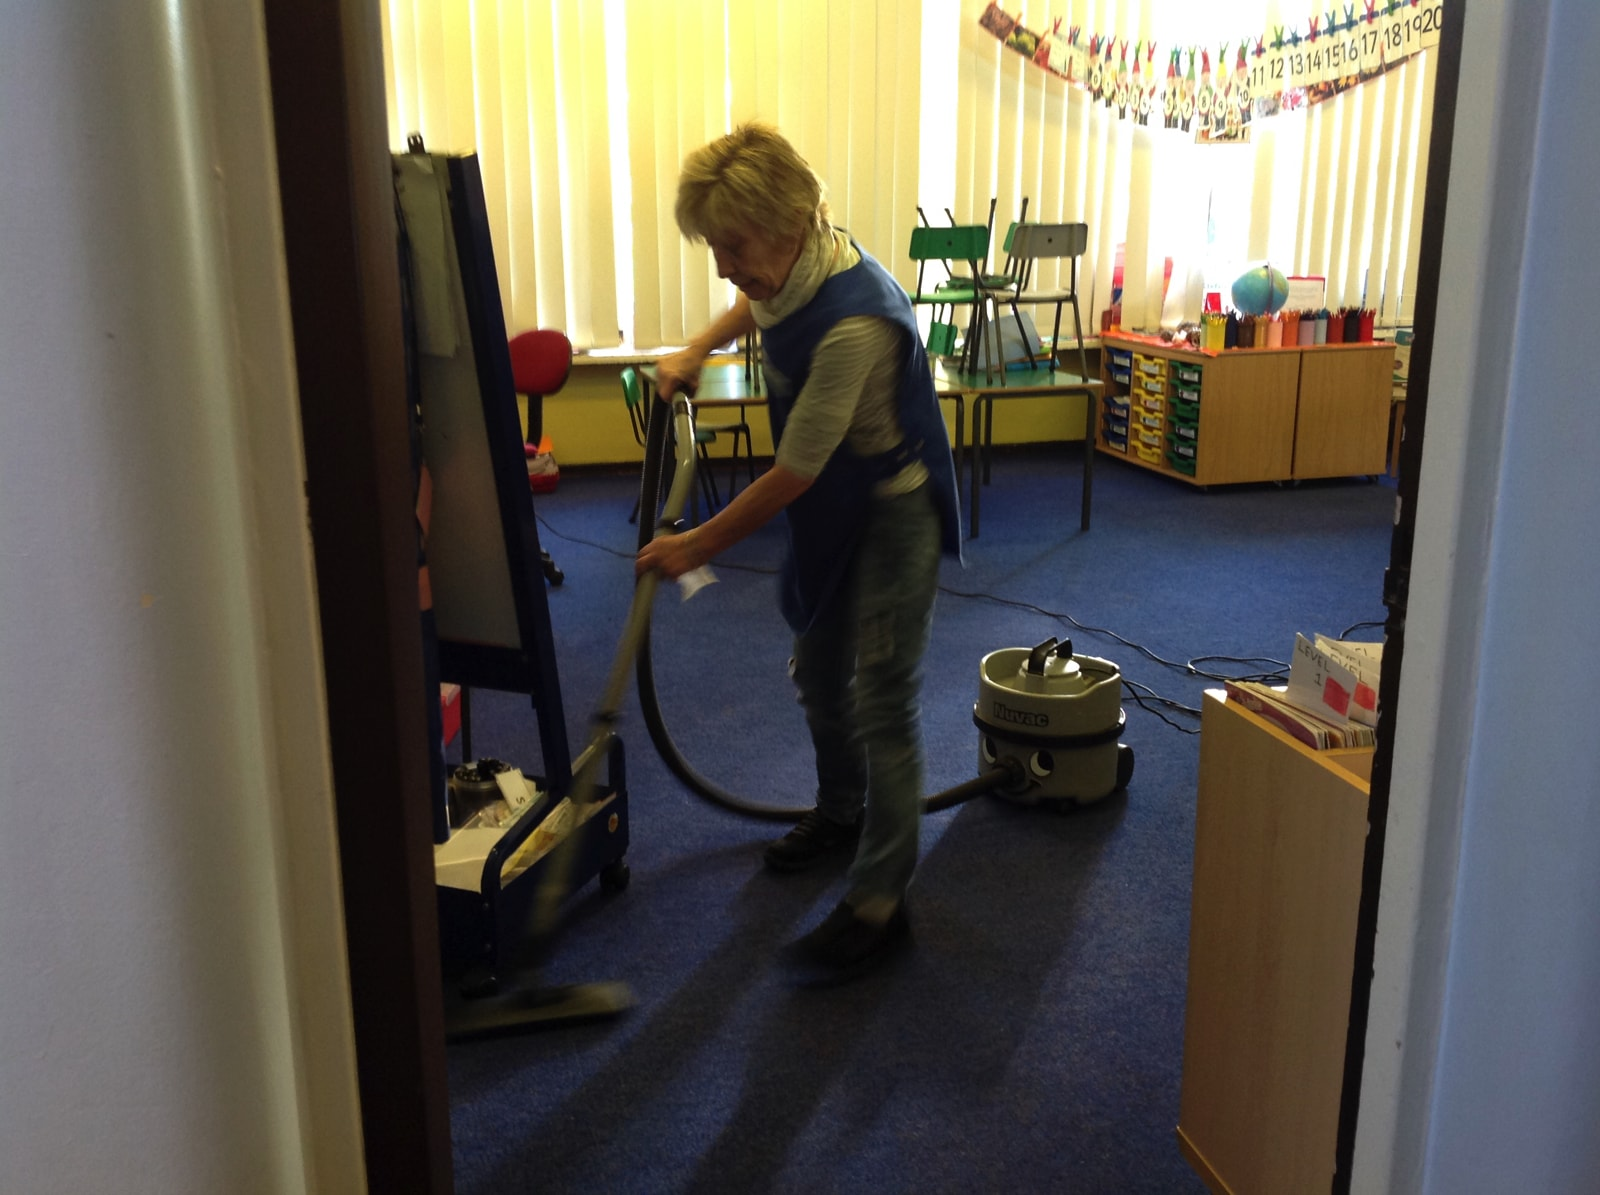 trustclean_contract_cleaning_school_33